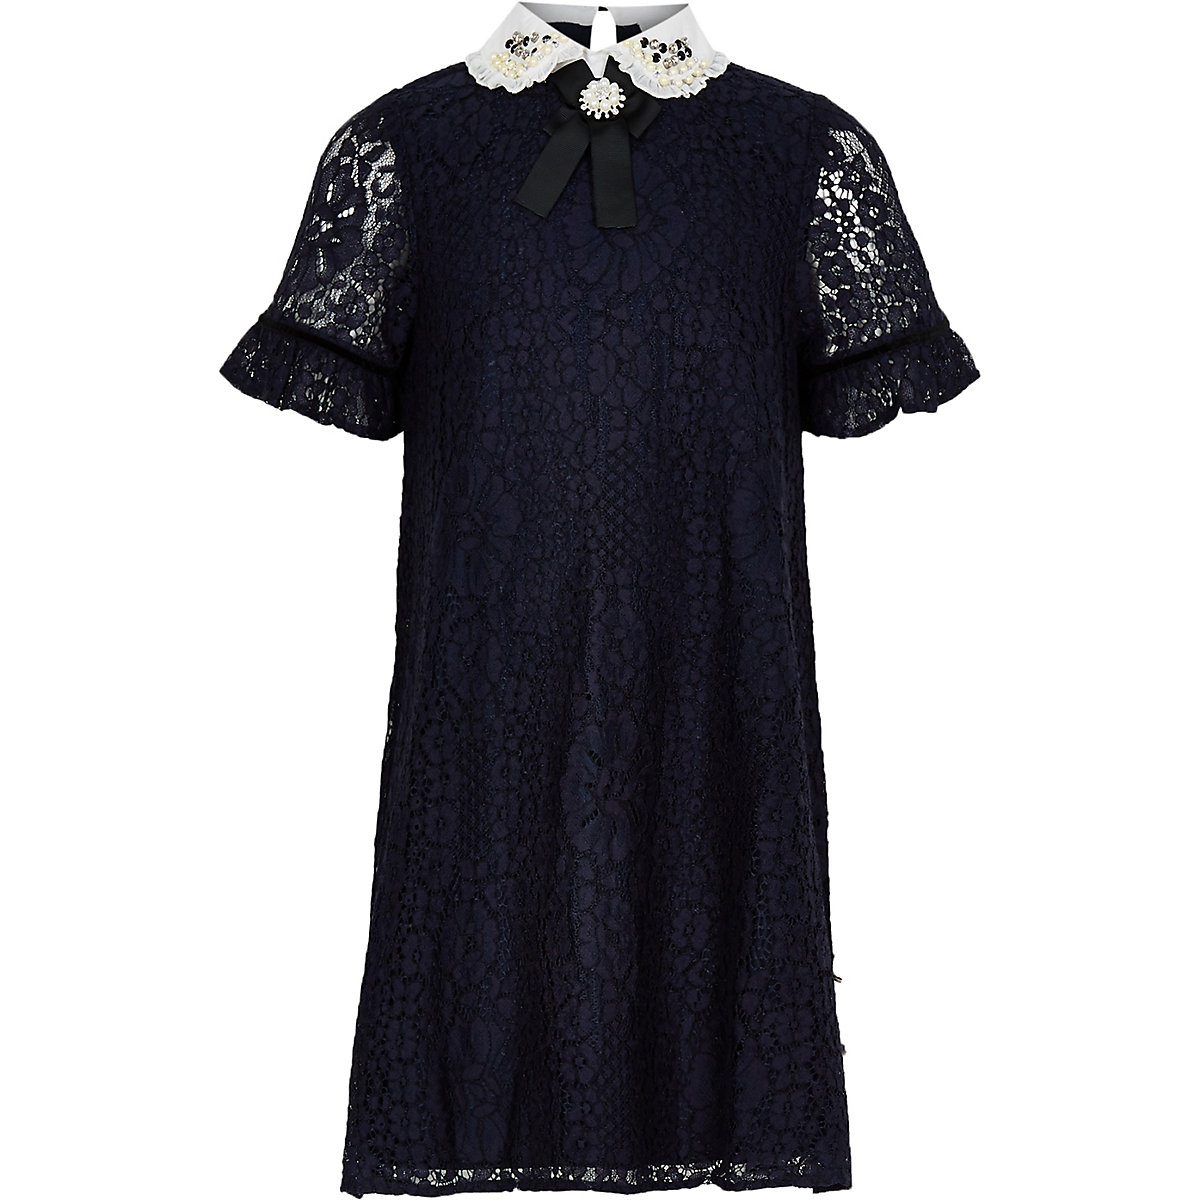 Girls navy lace embellished collar dress